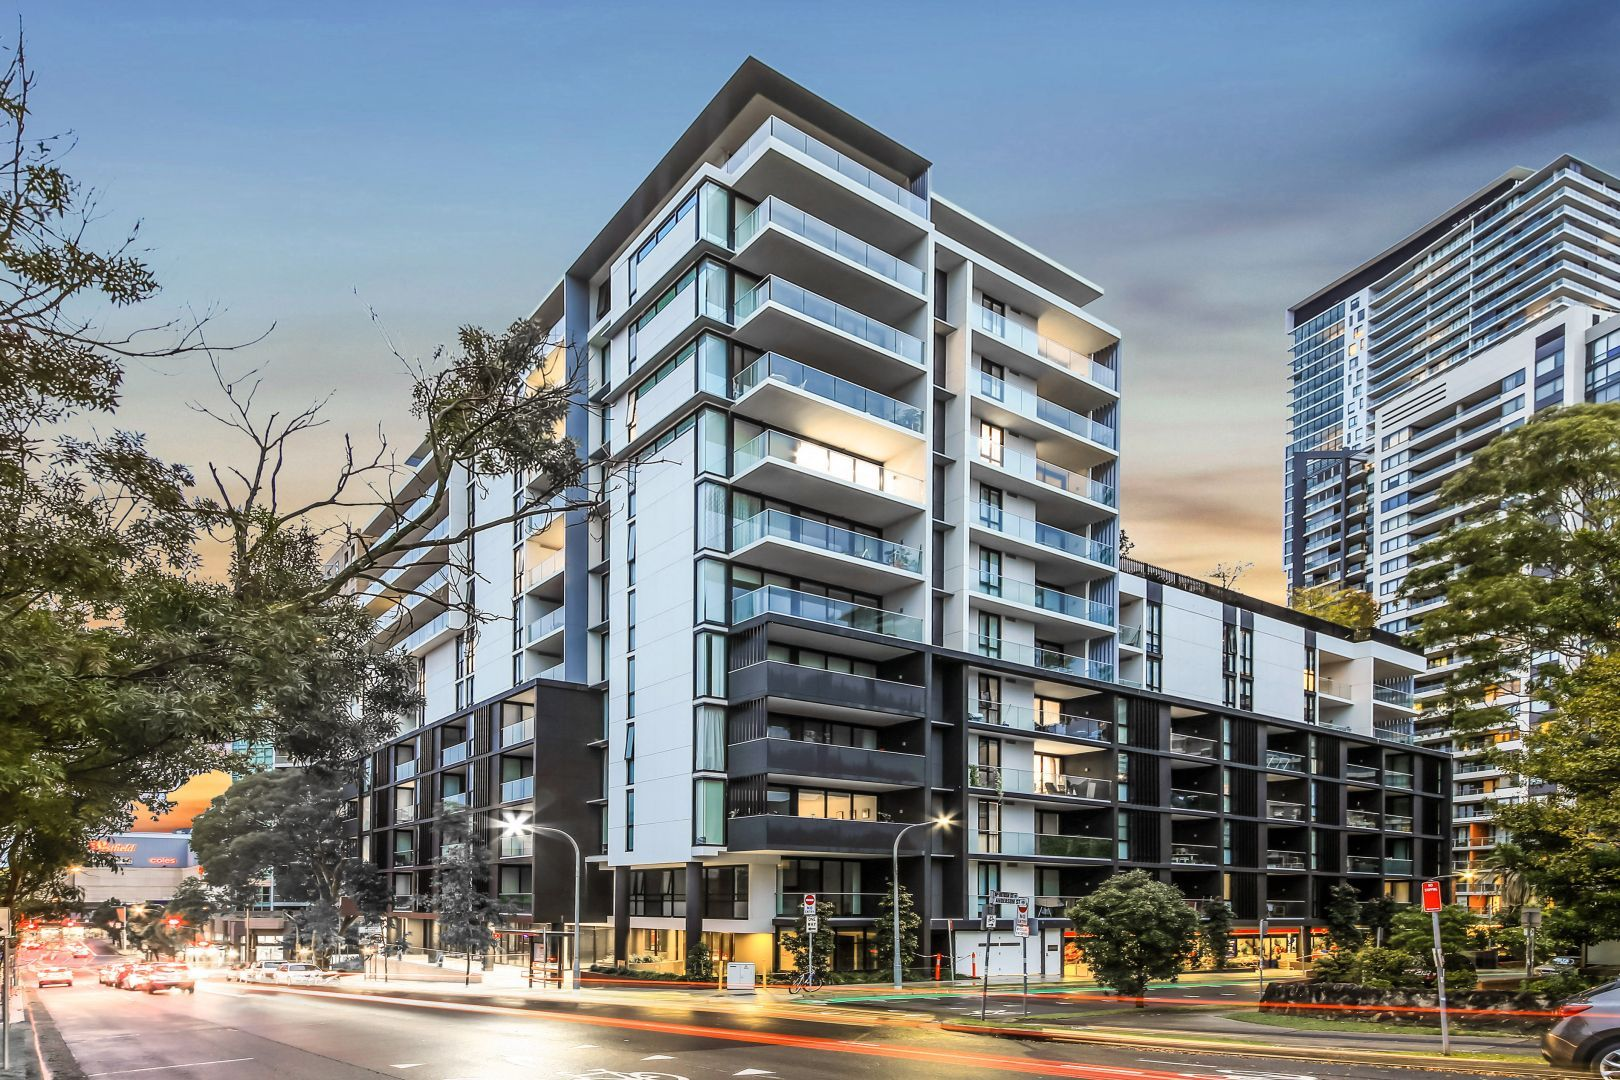 225/28 Anderson Street, Chatswood NSW 2067, Image 0